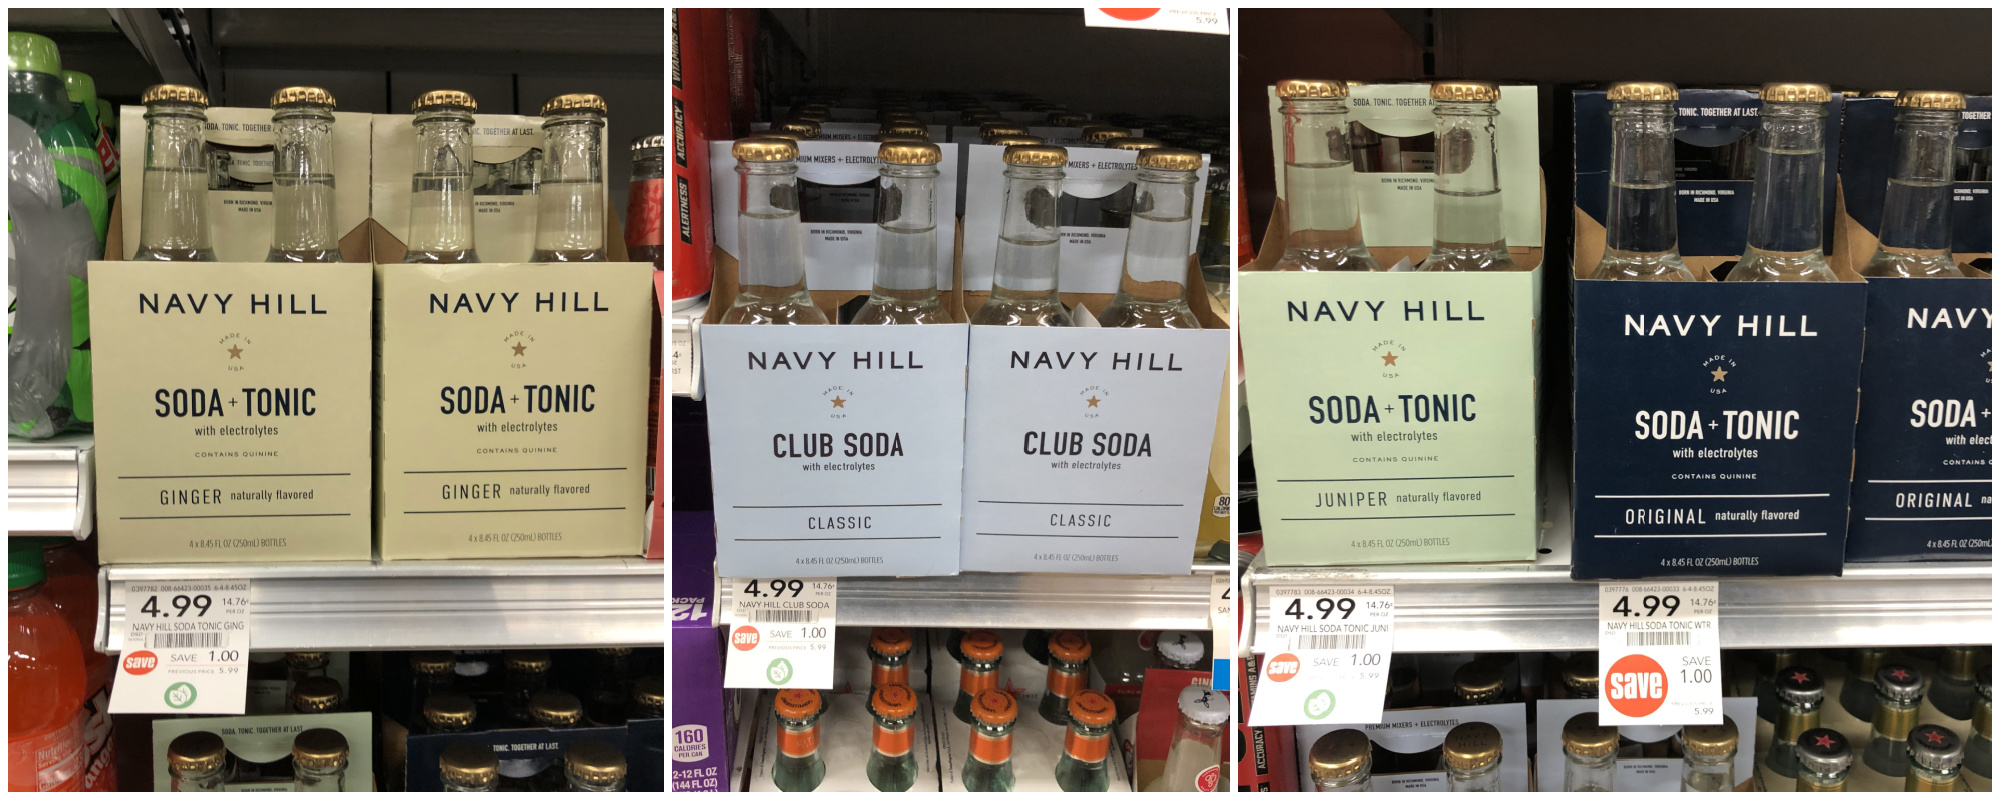 Huge Discount On Navy Hill Mixers At Publix – Save On A Delicious Soda + Tonic Blend! on I Heart Publix 2